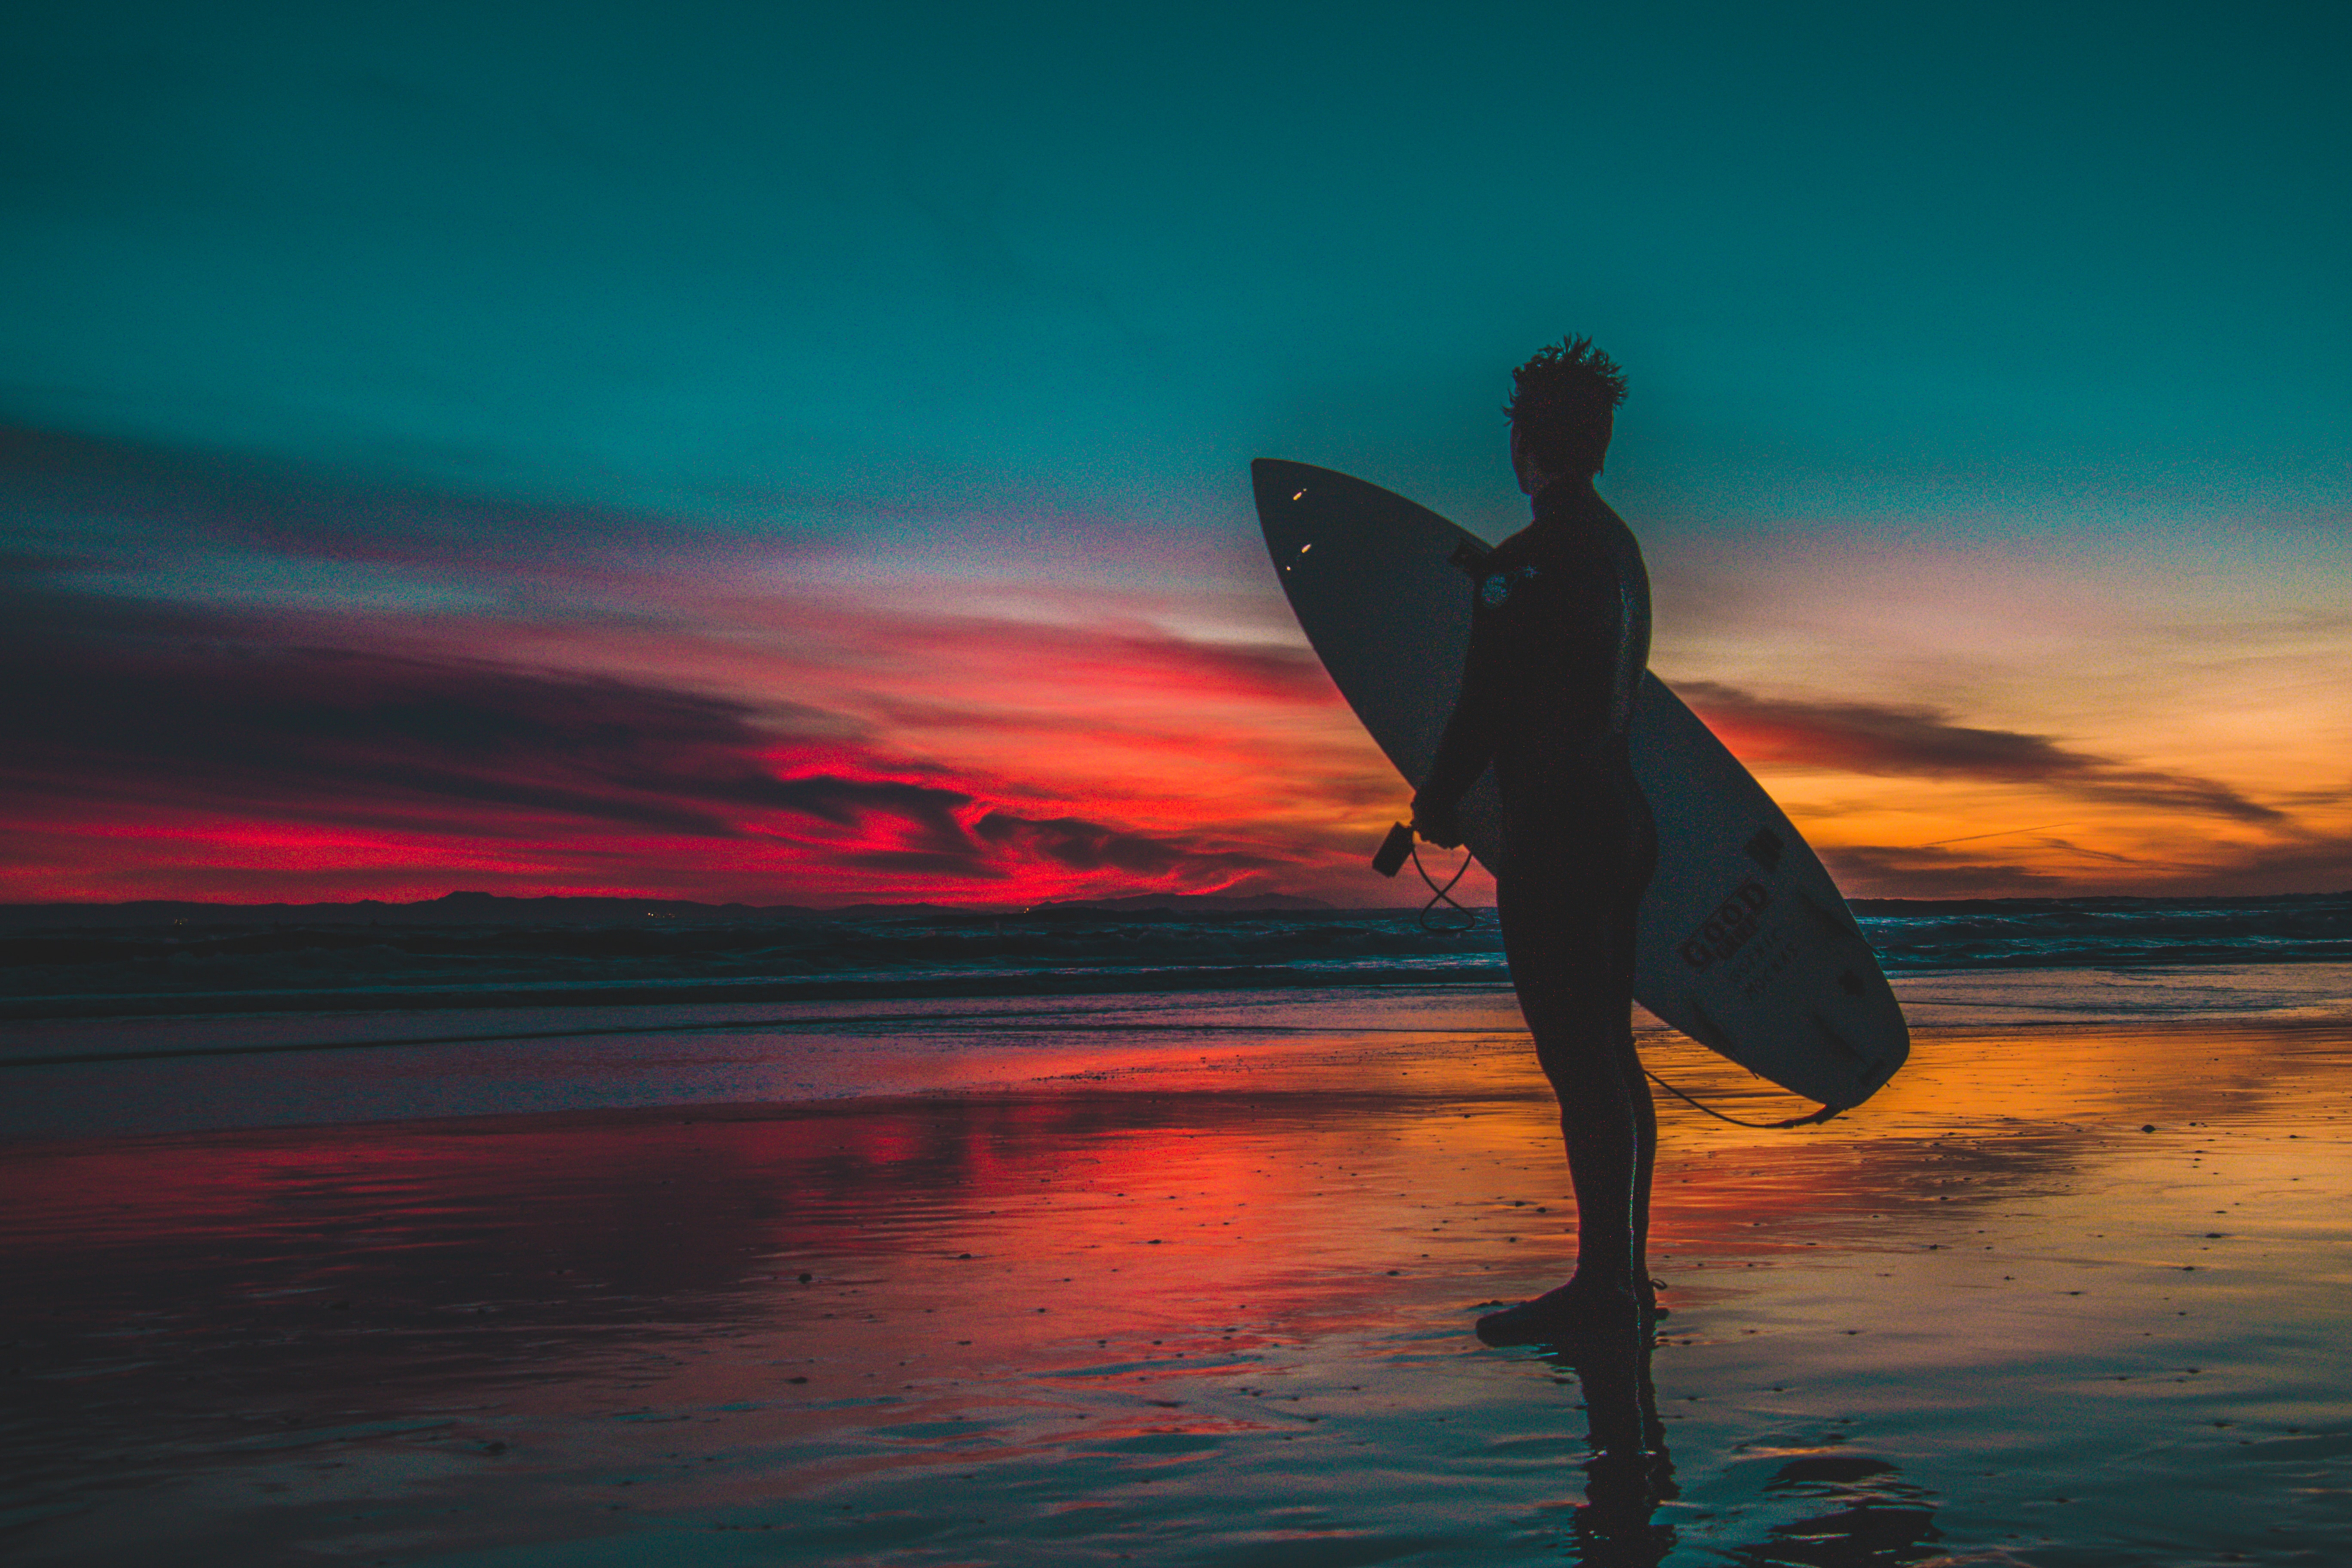 Silhouette of man in wet suit holding white surfboard while standing on beach during golden hour photo